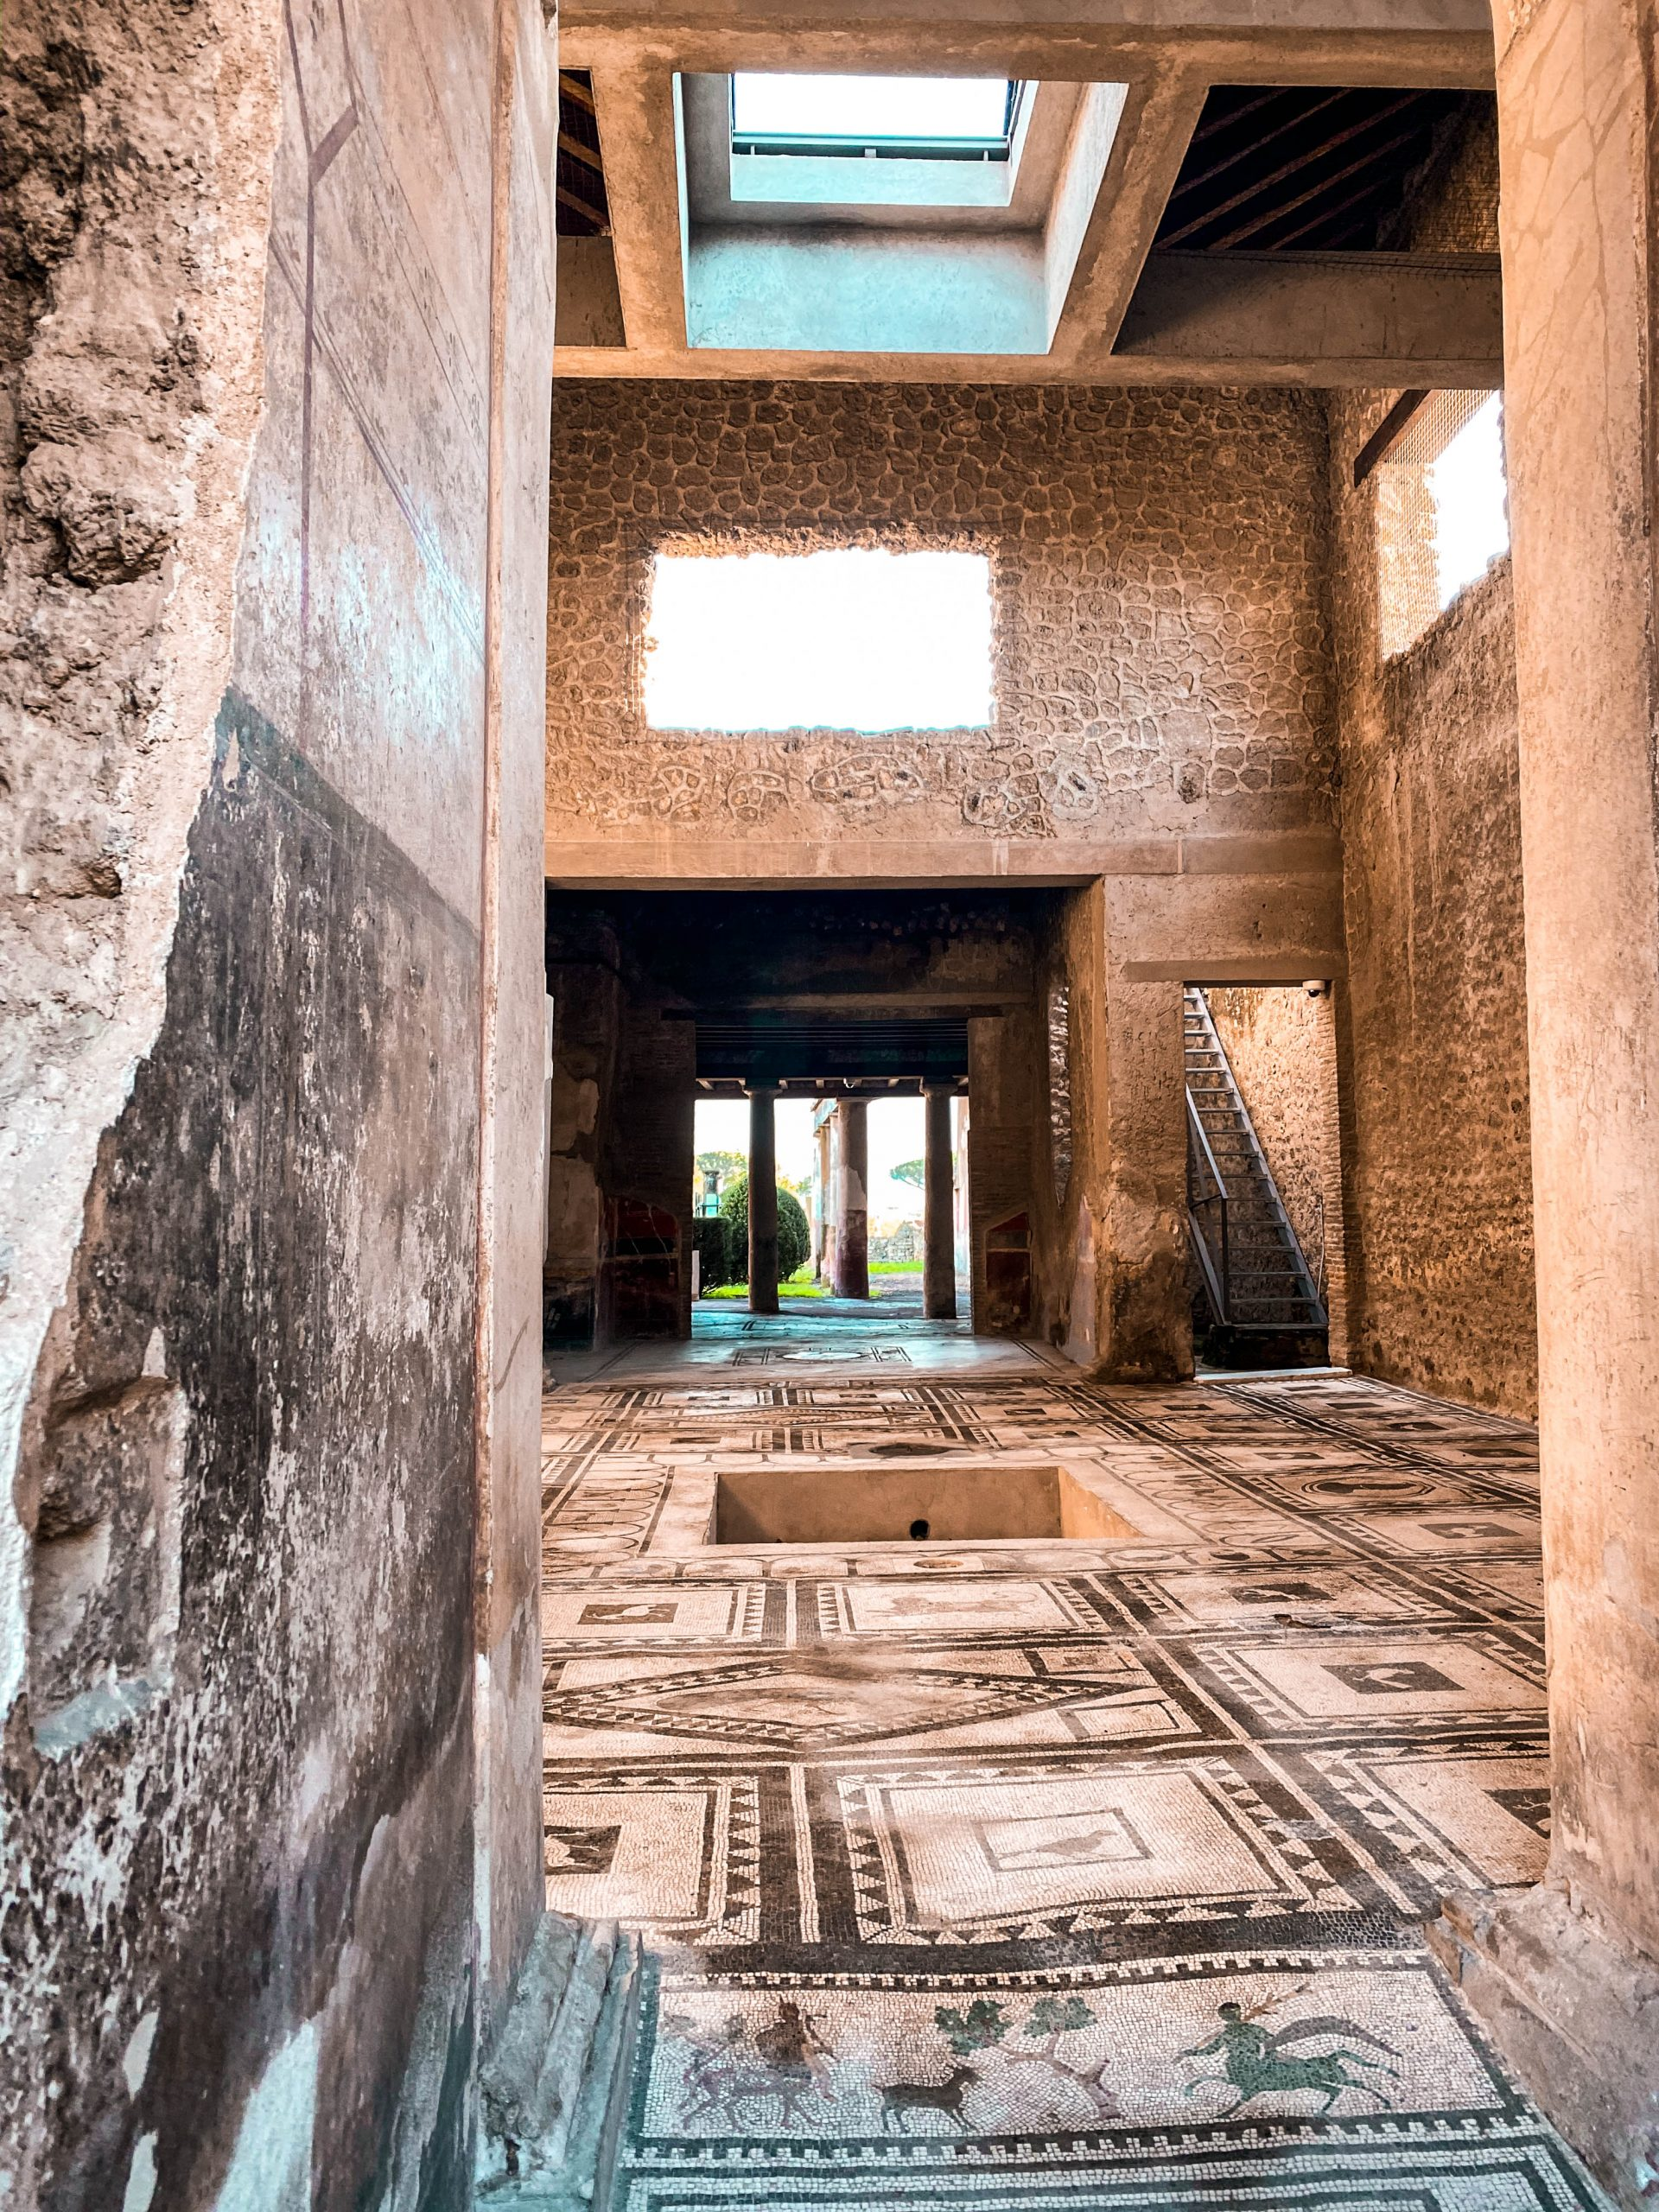 house of the cryptoporticus casa del criptoportico italian mosaic art ancient ruins pompeii italy